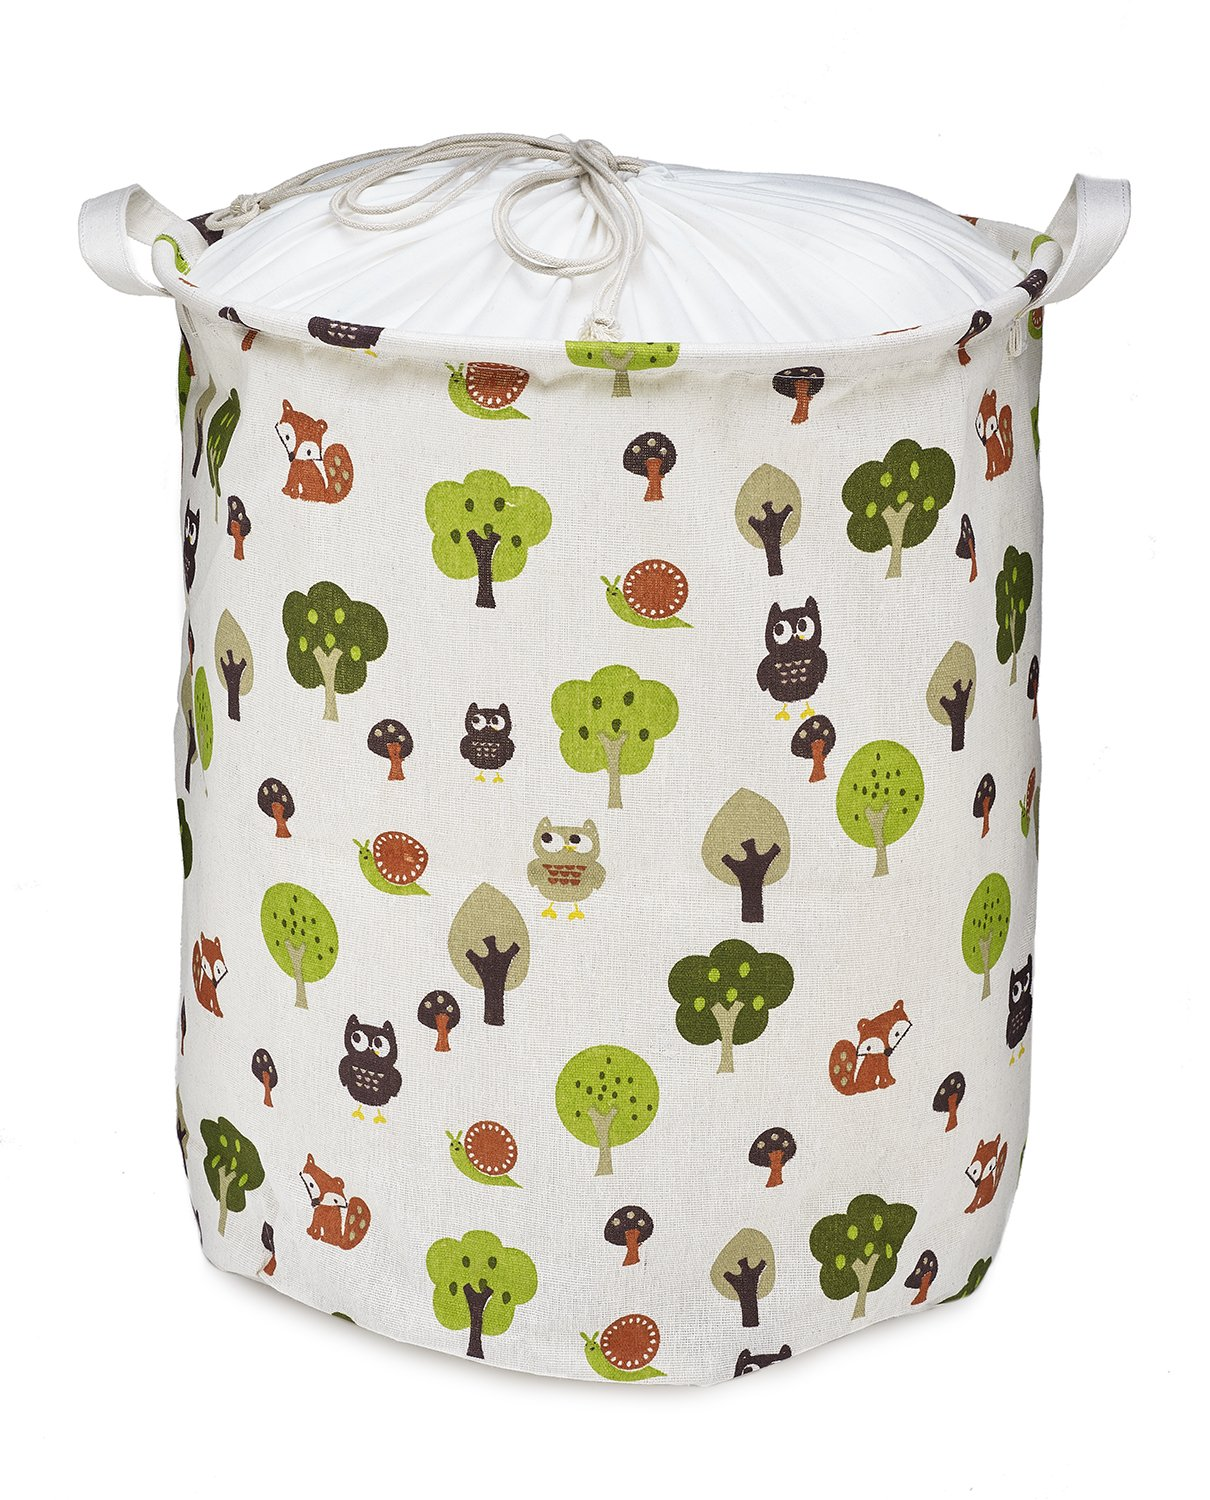 Org Store Cotton Fabric Collapsible Laundry Basket Dirty Clothes Hamper - Perfect for College Dorms, Kids Room & Bathroom (Forest Patterned) ORG012